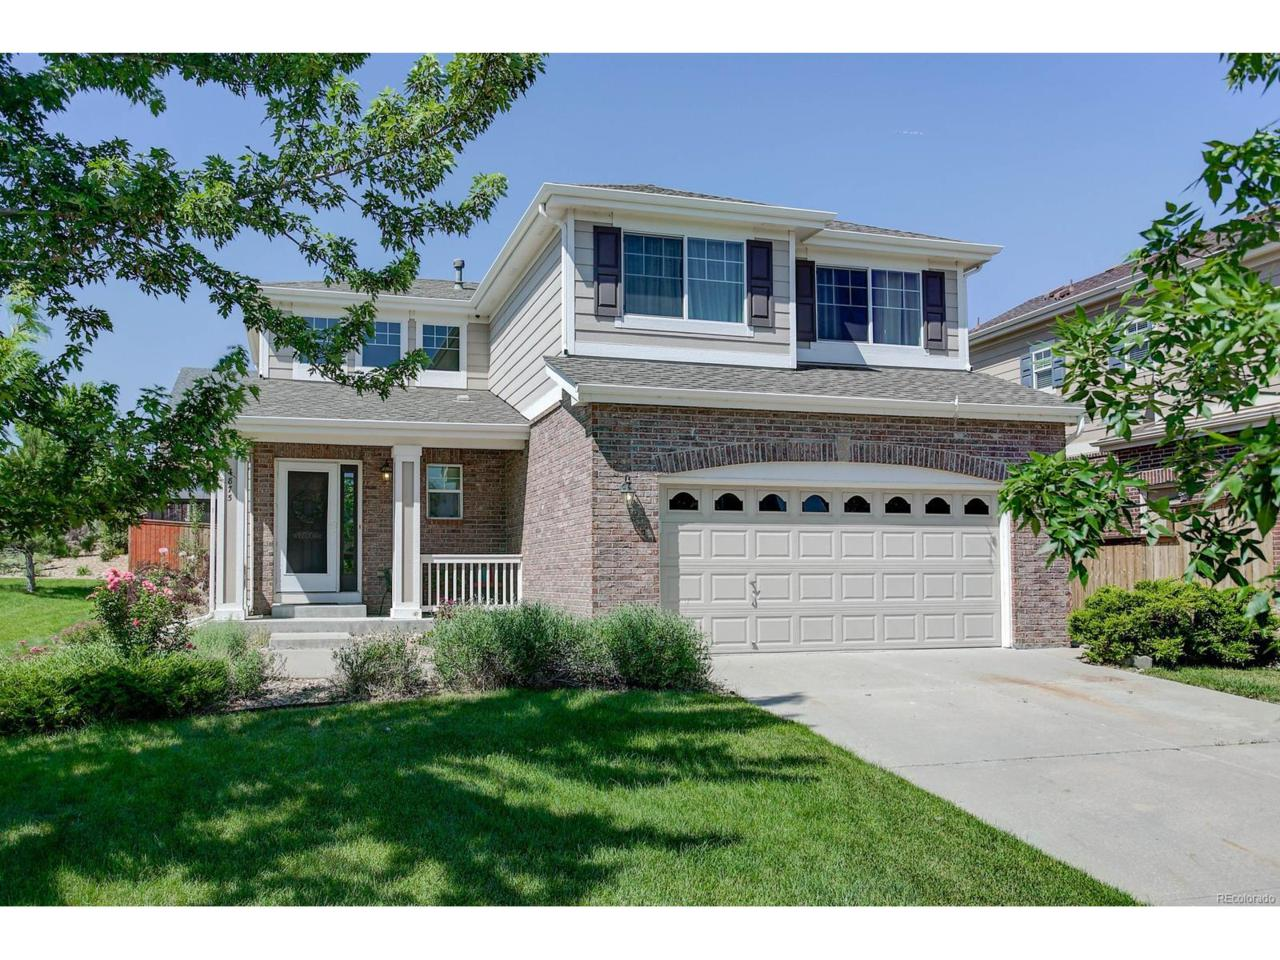 4875 S Eaton Park Way, Aurora, CO 80016 (MLS #9770534) :: 8z Real Estate